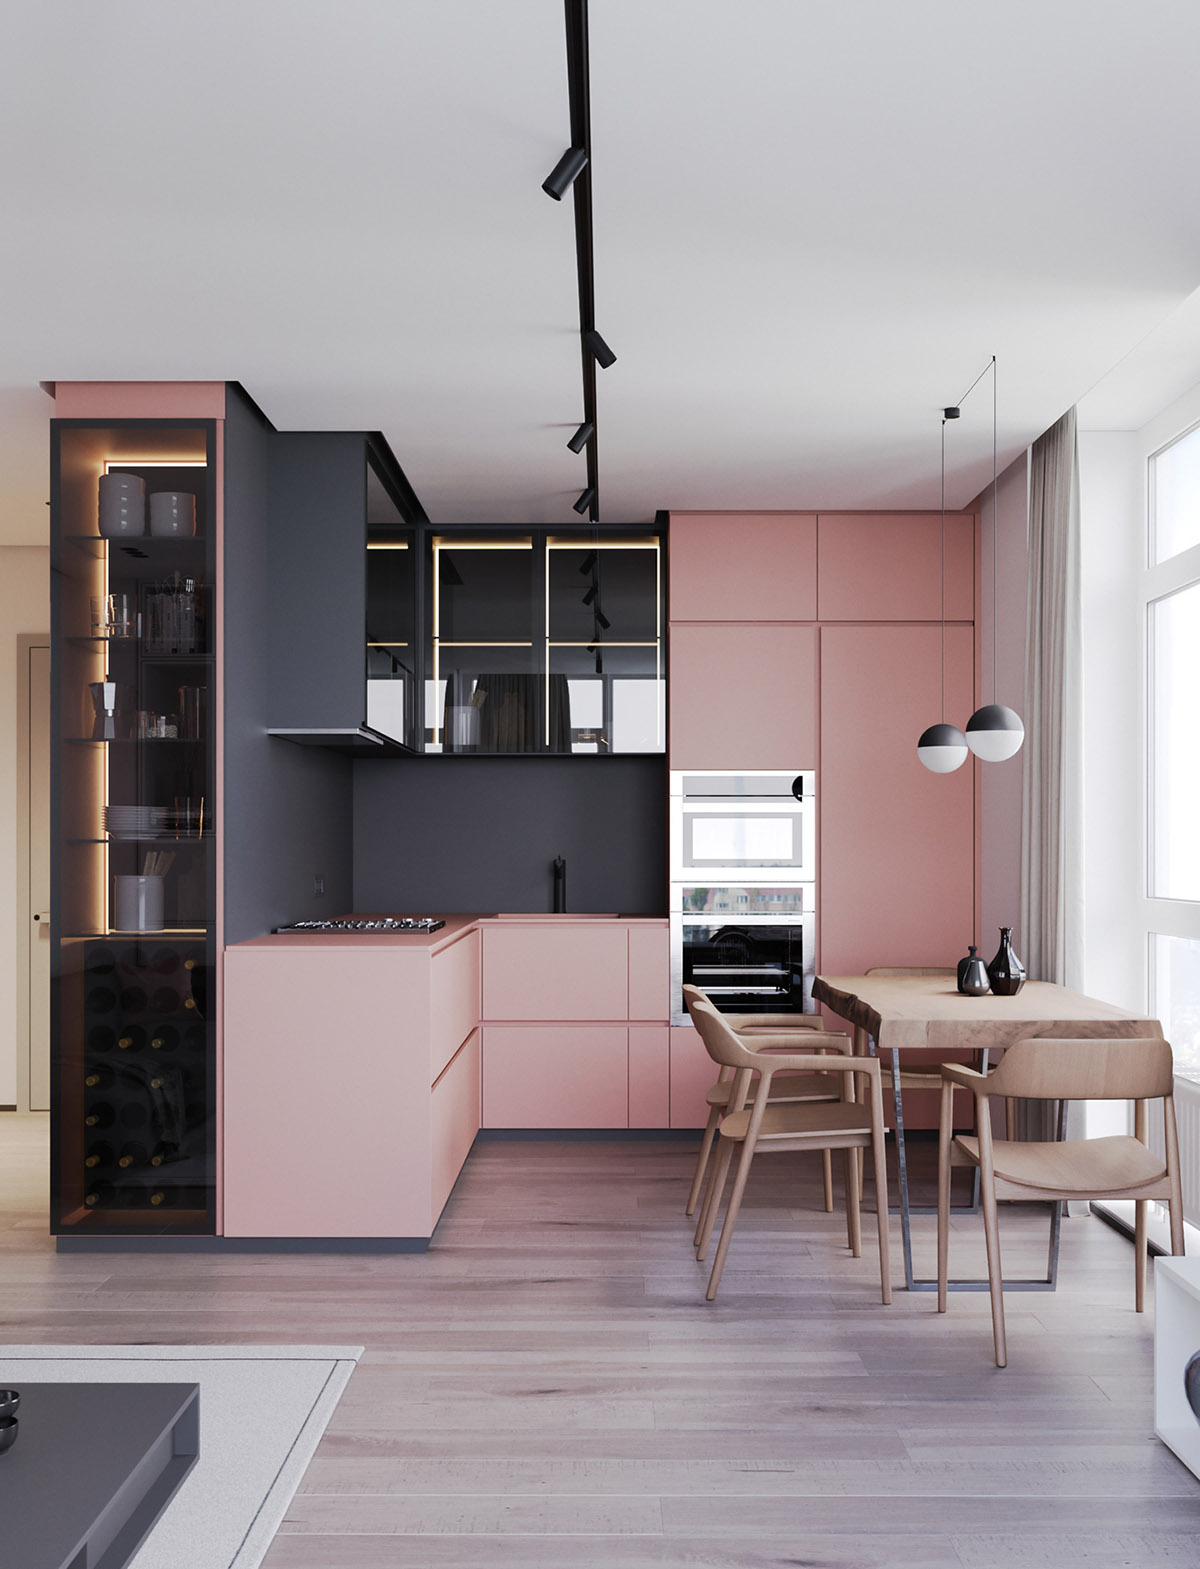 51 Inspirational Pink Kitchens With Tips & Accessories To Help You Design Yours images 1